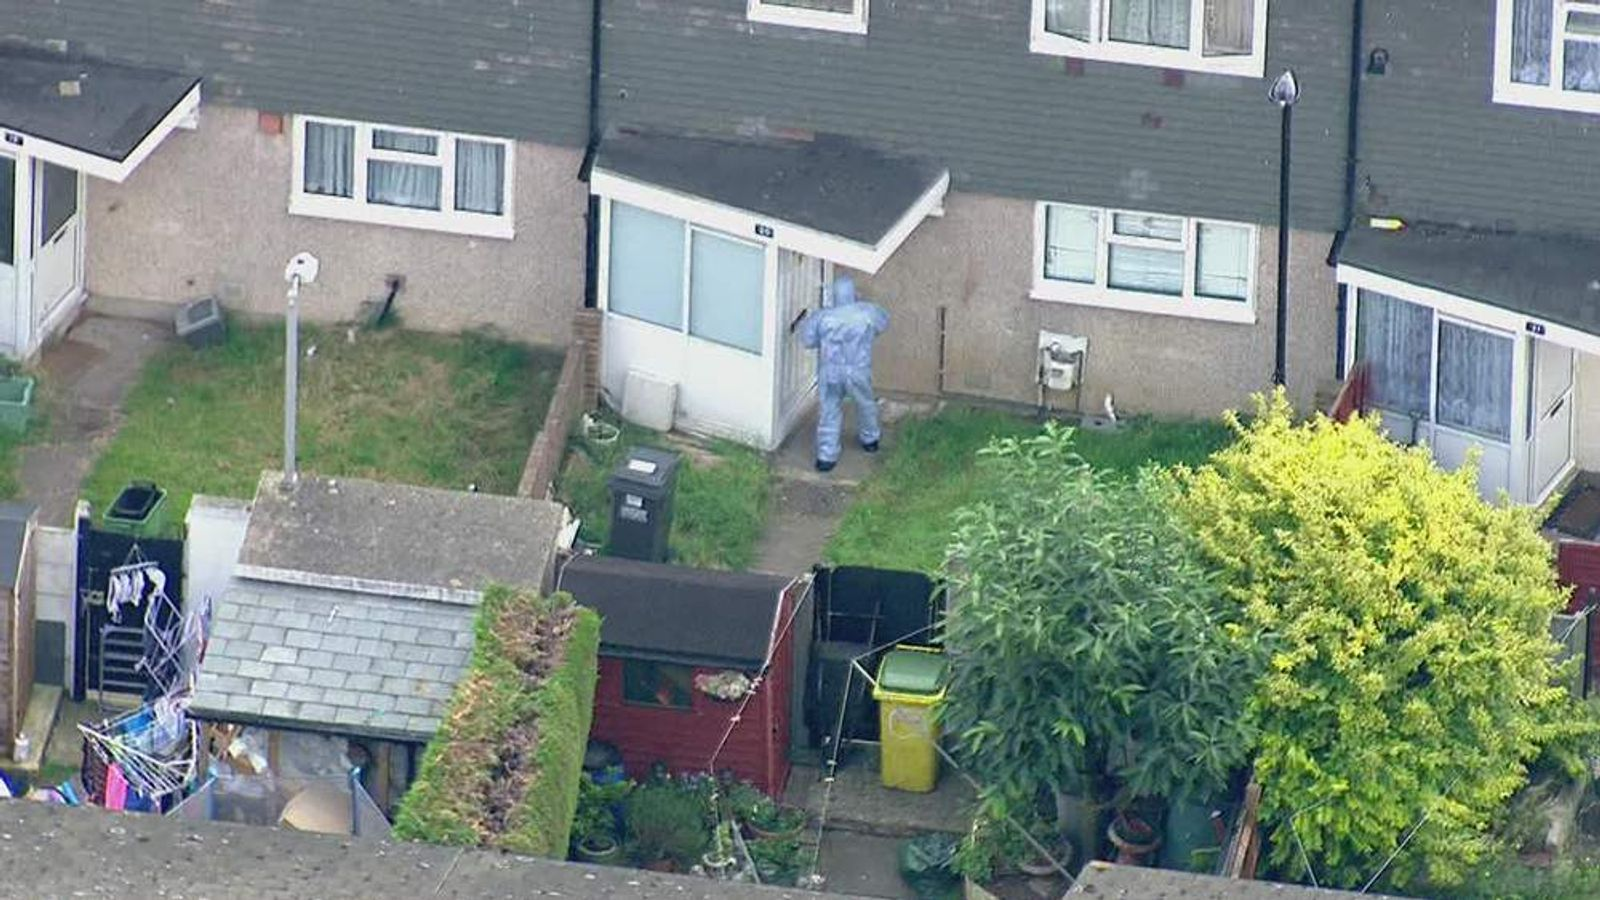 Aerial view of the scene around new addington where there has been a development in the search for missing schoolgirl Tia Sharp.